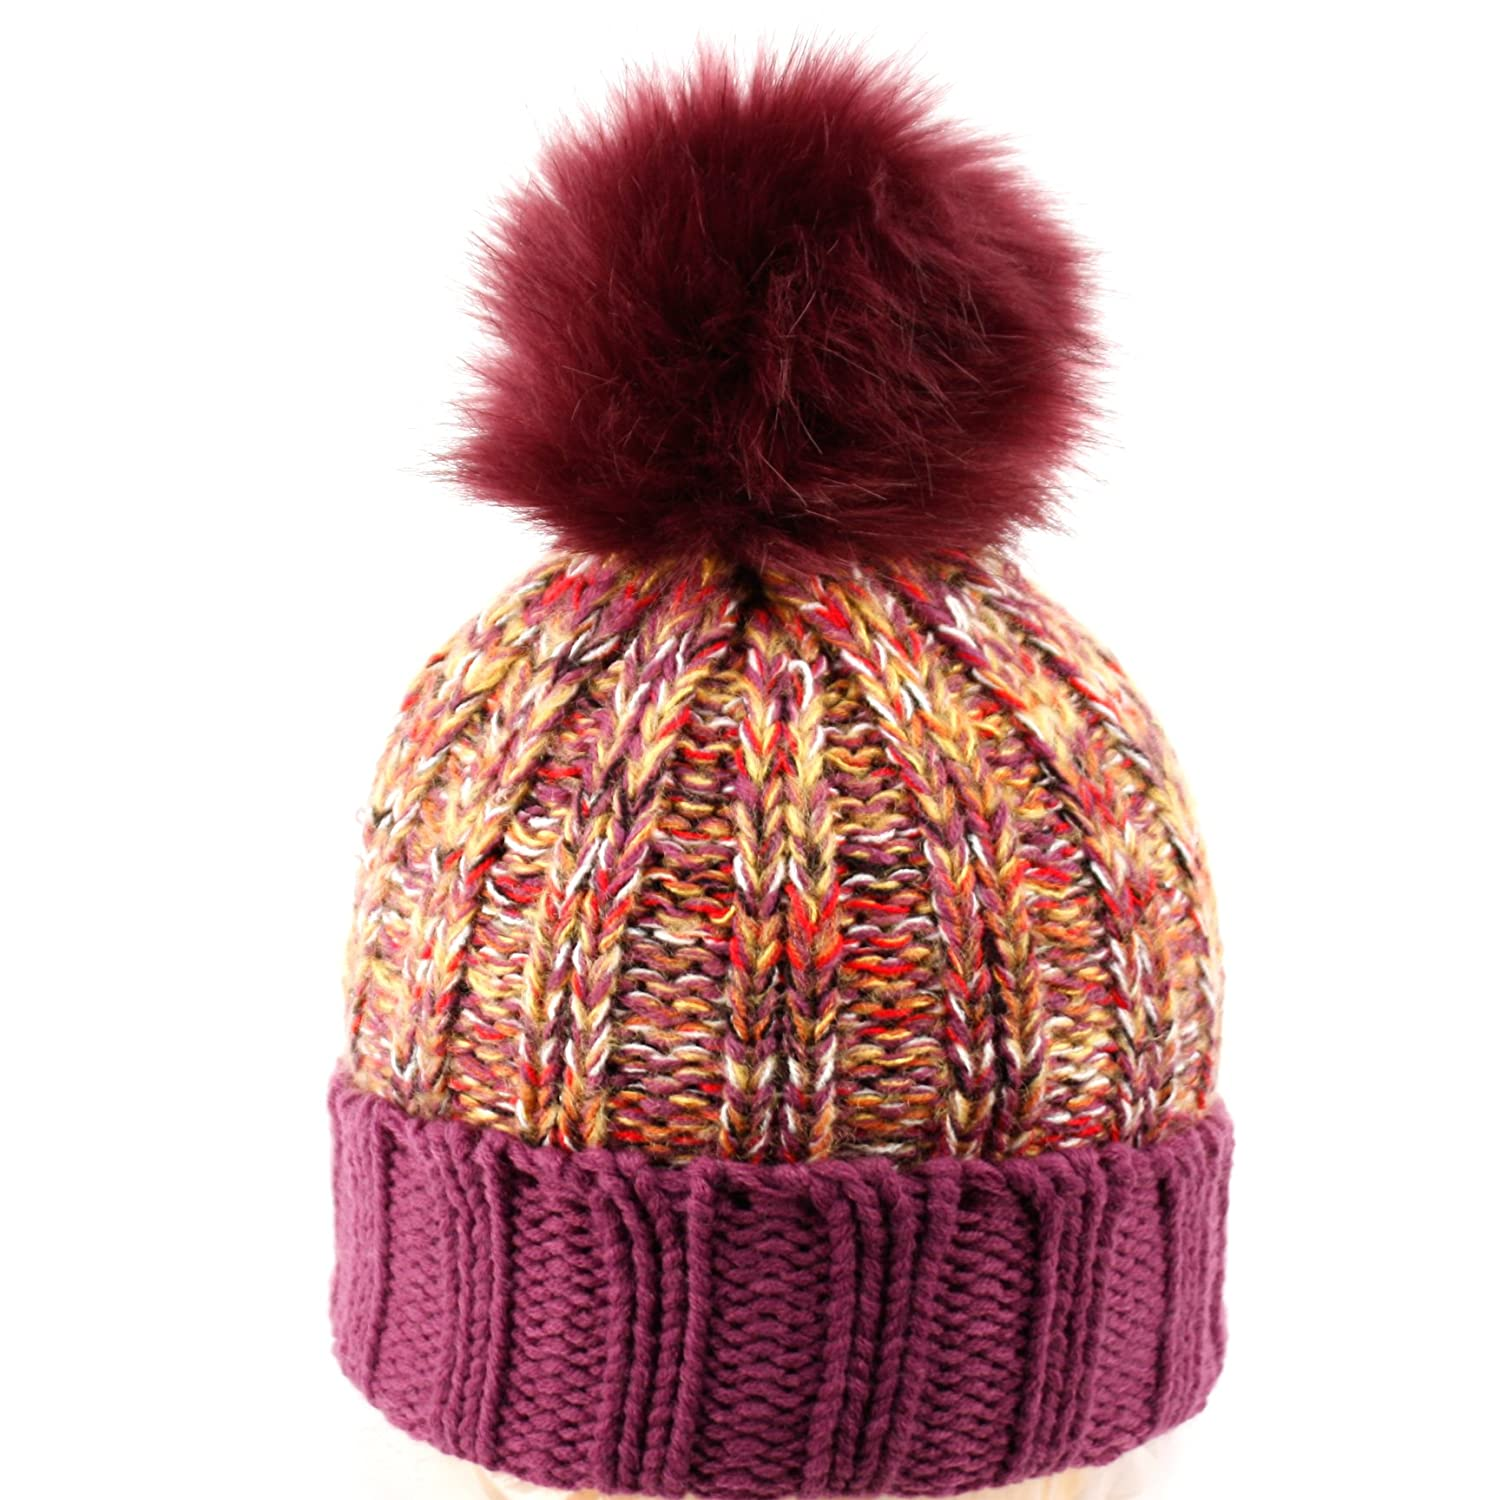 ae0fe172cd8 BN2130 Multi Color Pom Pom Crochet Thick Knit Slouchy Beanie Beret Winter  Ski Hat (A PURPLE) at Amazon Women s Clothing store